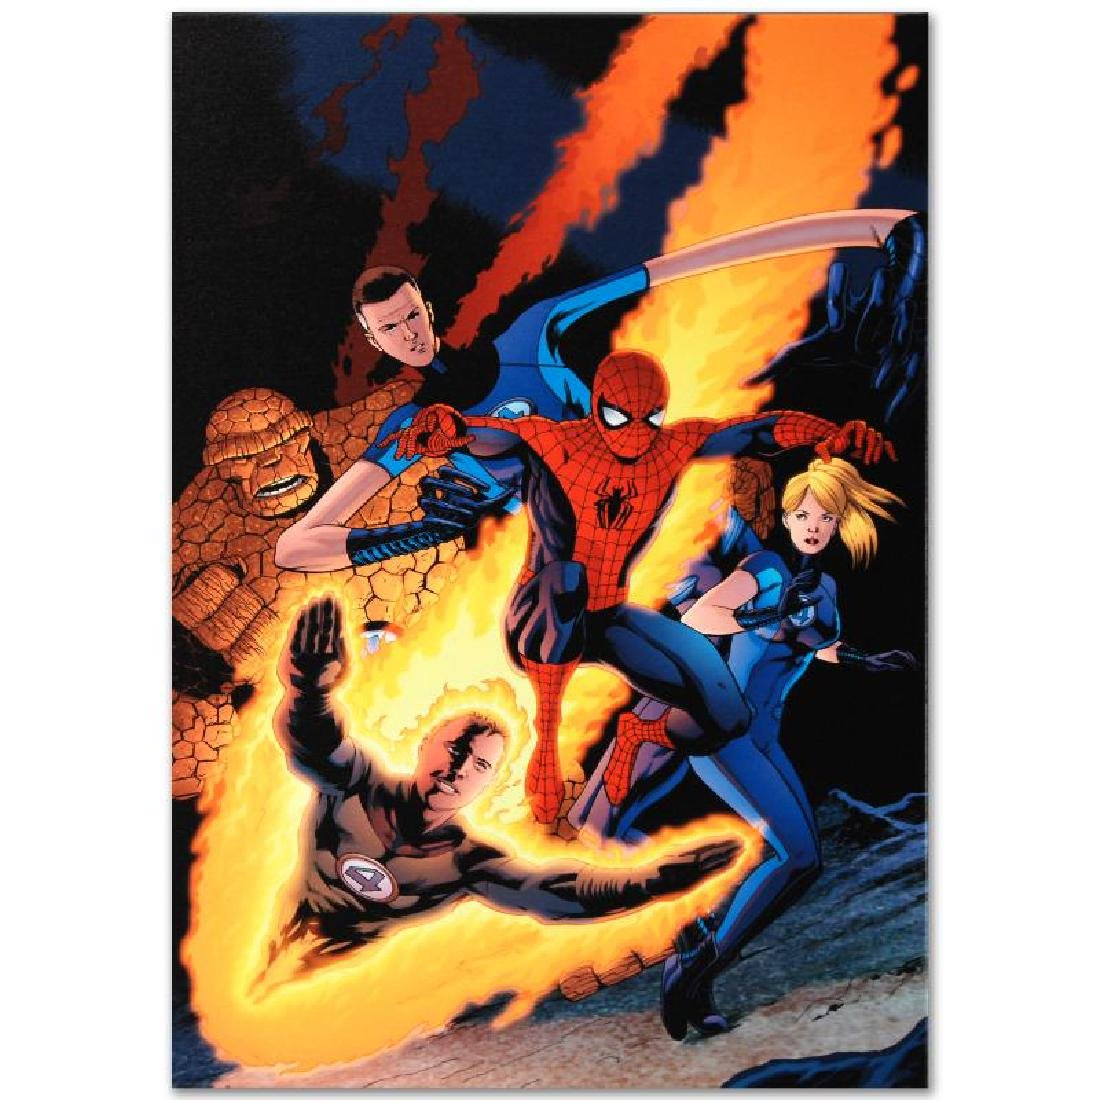 The Amazing Spider-Man #590 by Marvel Comics - 3